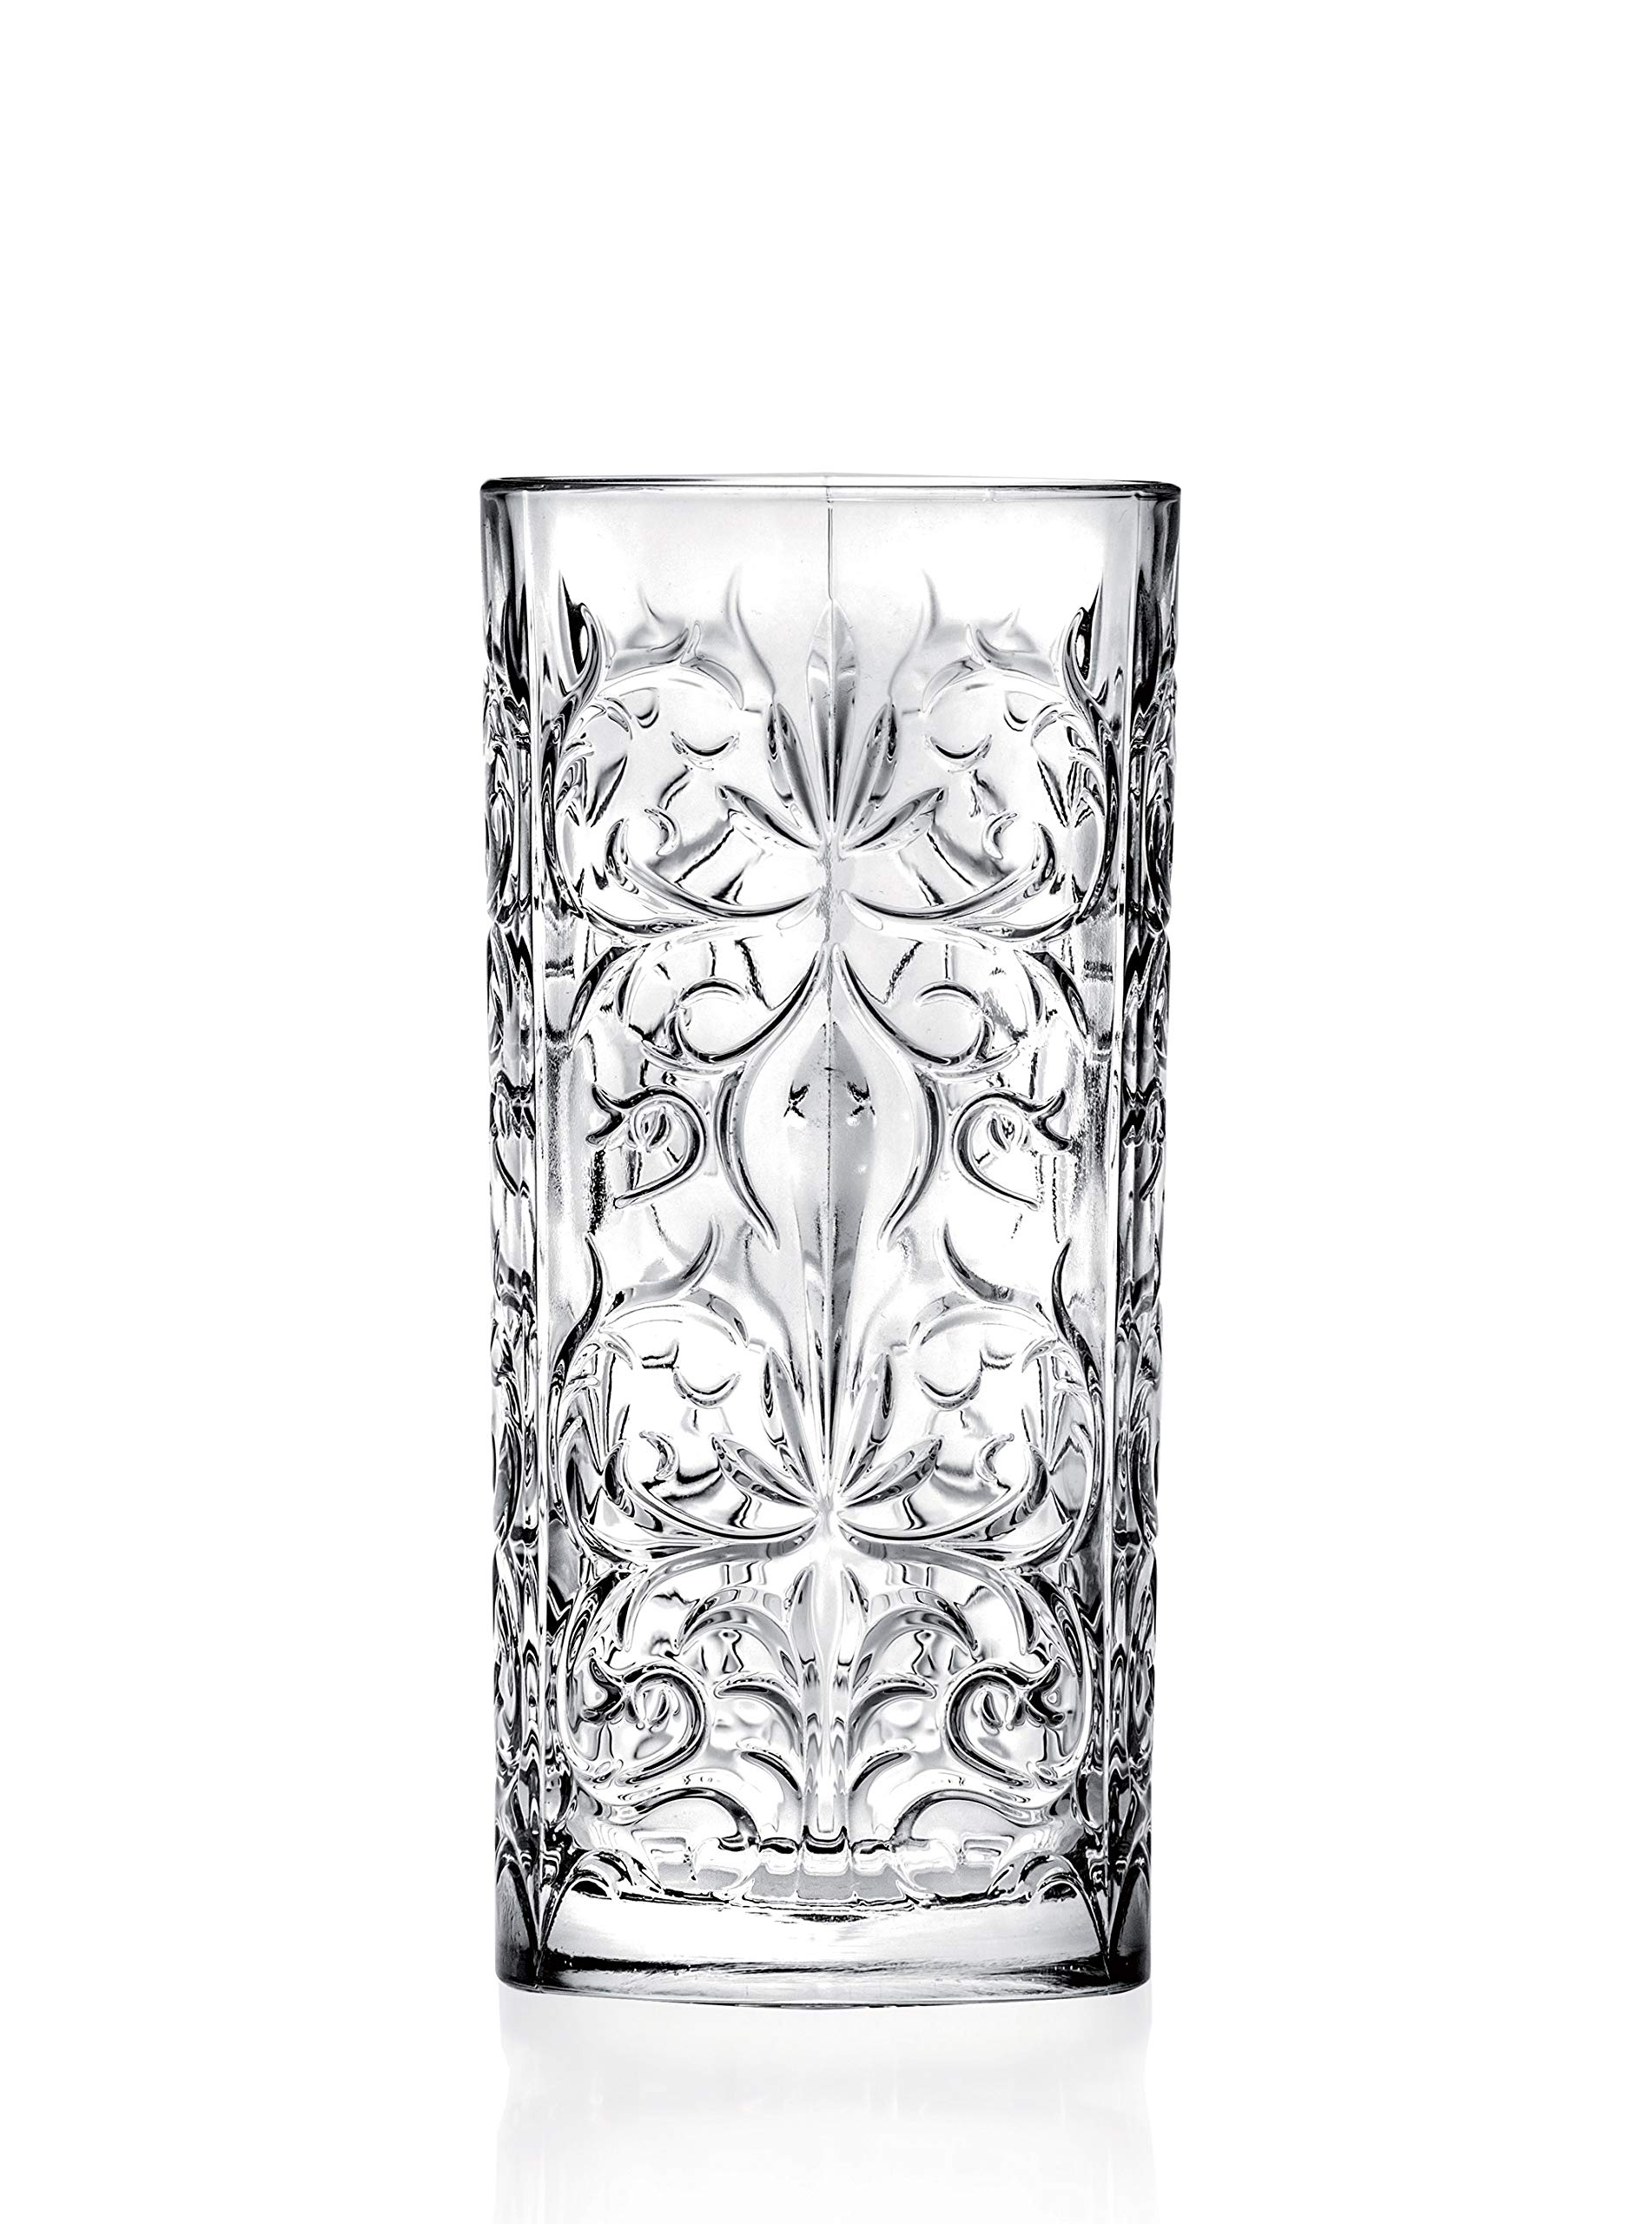 Highball - Glass - Set of 6 - Hiball Glasses - Lead Free Crystal - Beautiful Tattoo Design - Drinking Tumblers - for Water, Juice, Wine, Beer and Cocktails - 13 oz. - by Barski - Made in Europe by Barski